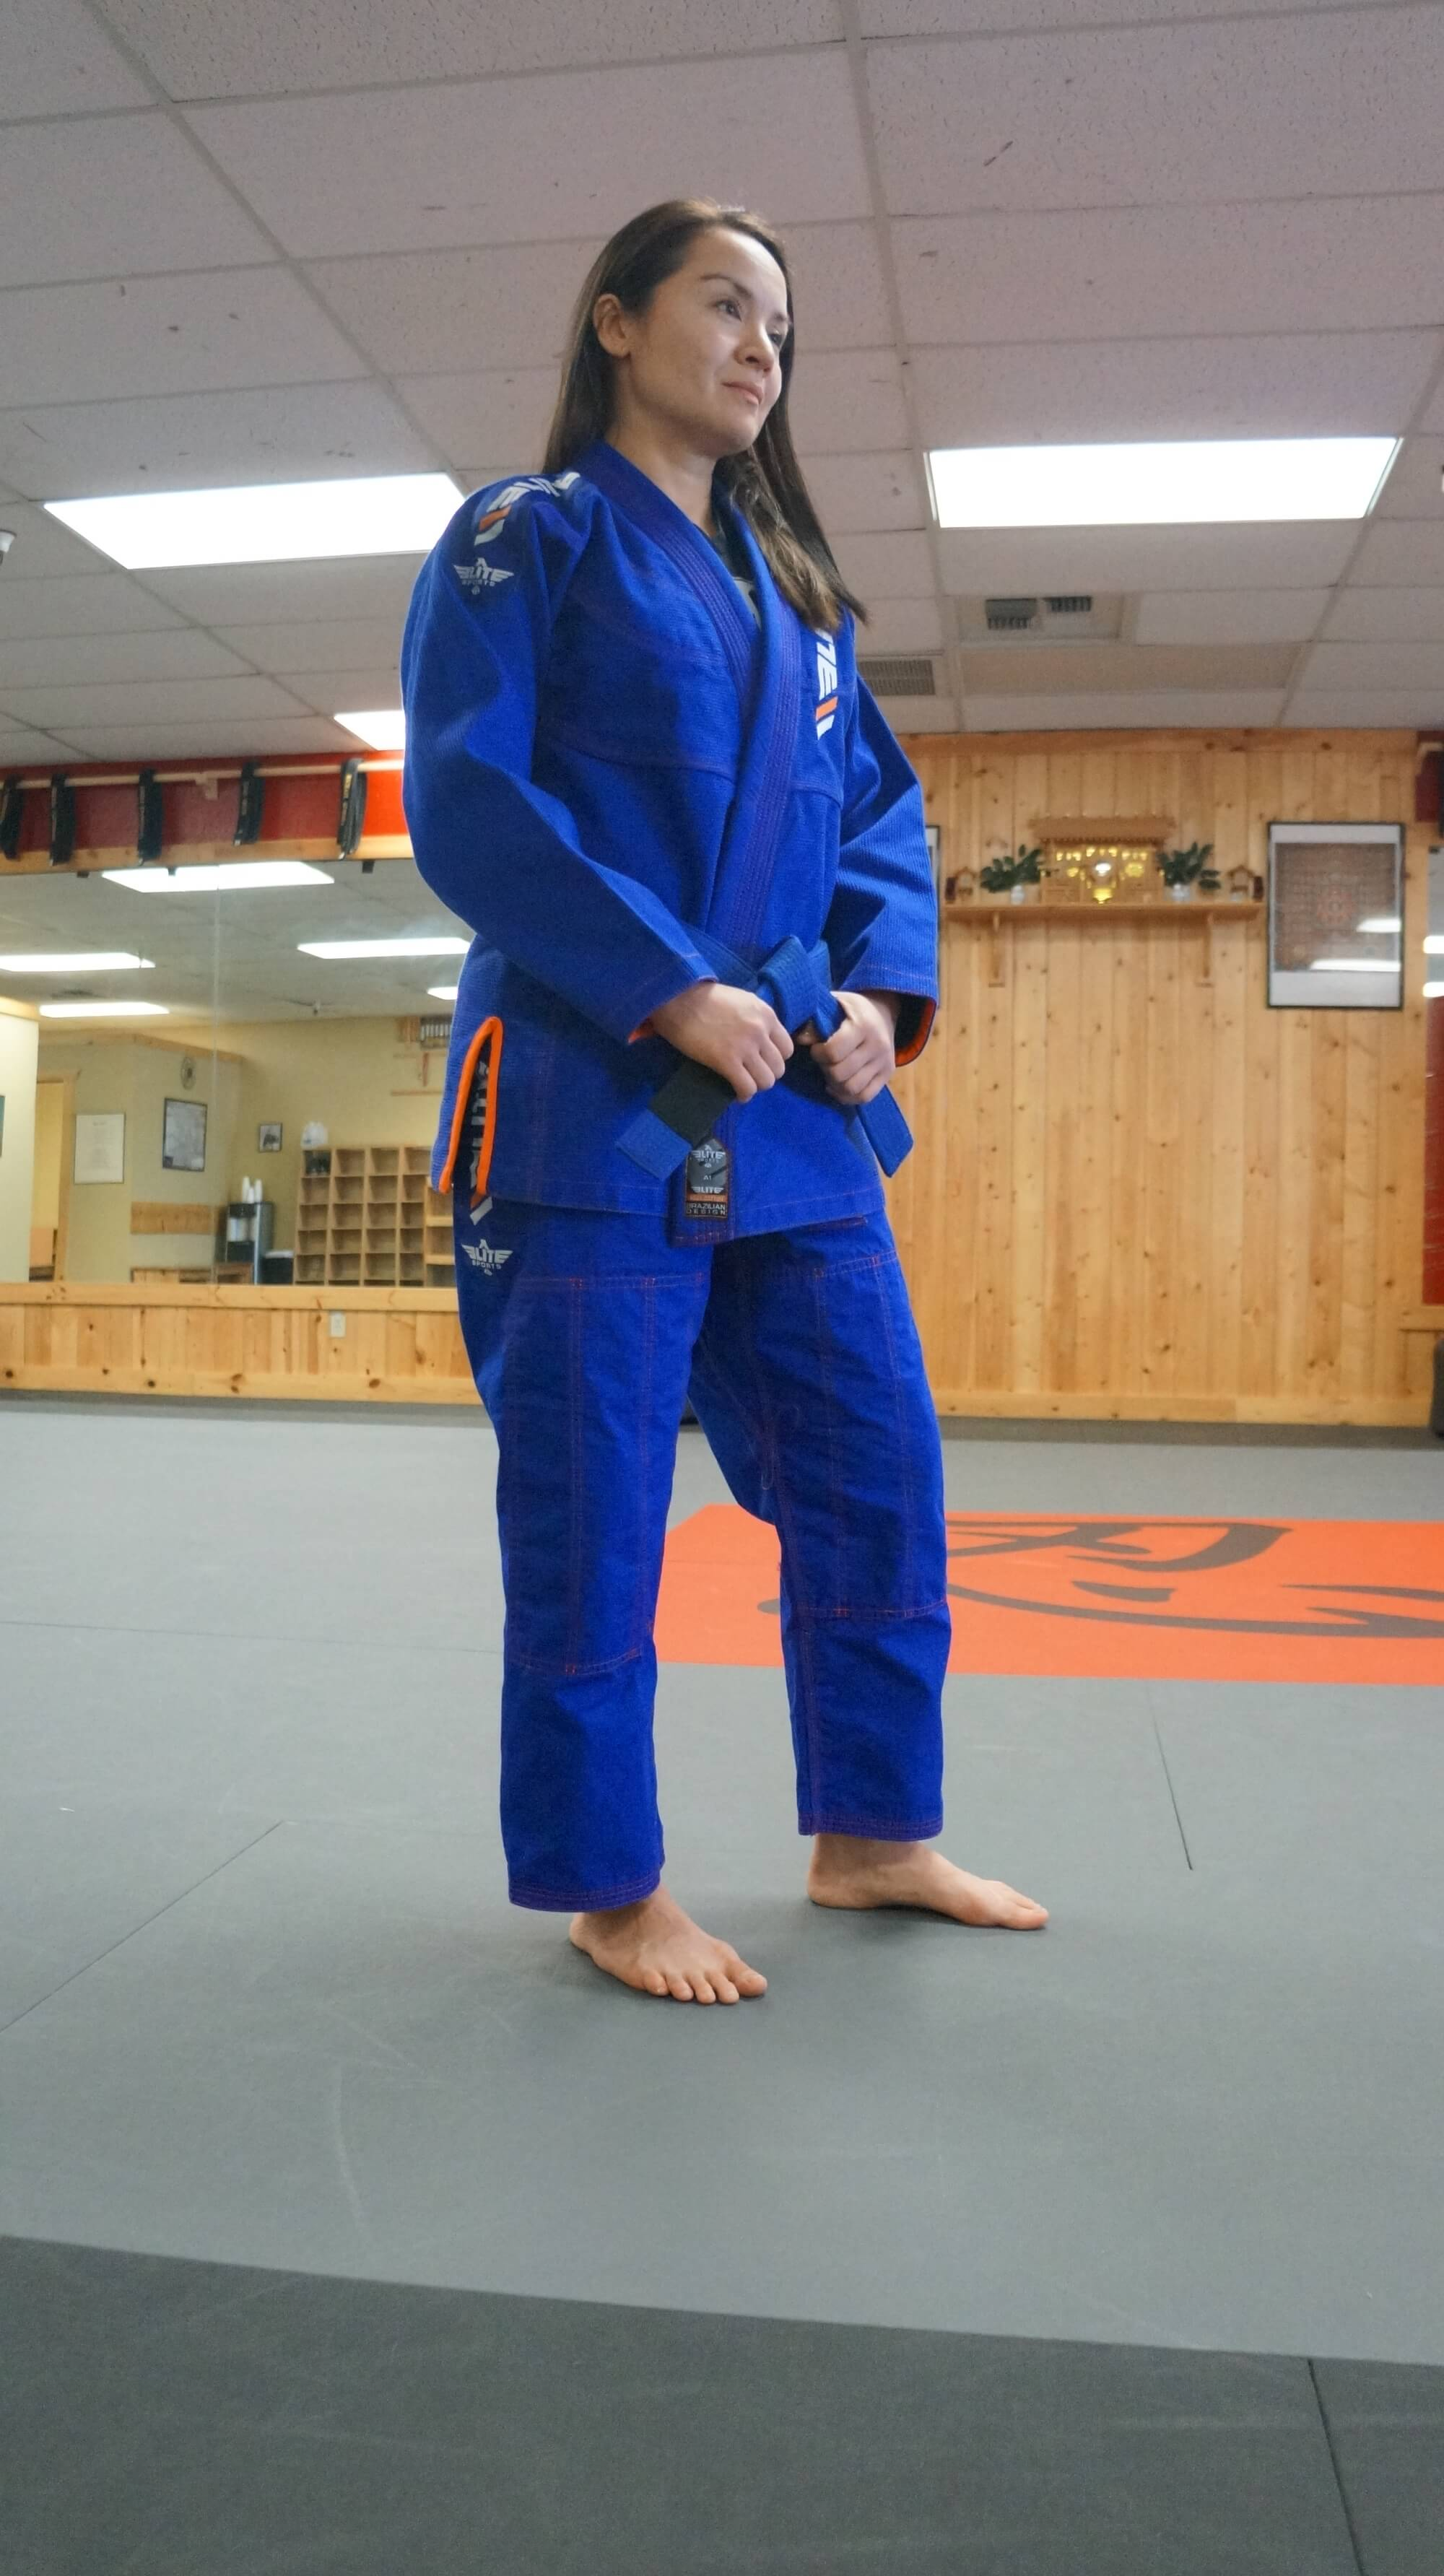 Elite Sports Team Elite Bjj Fighter Ann Ching Image1